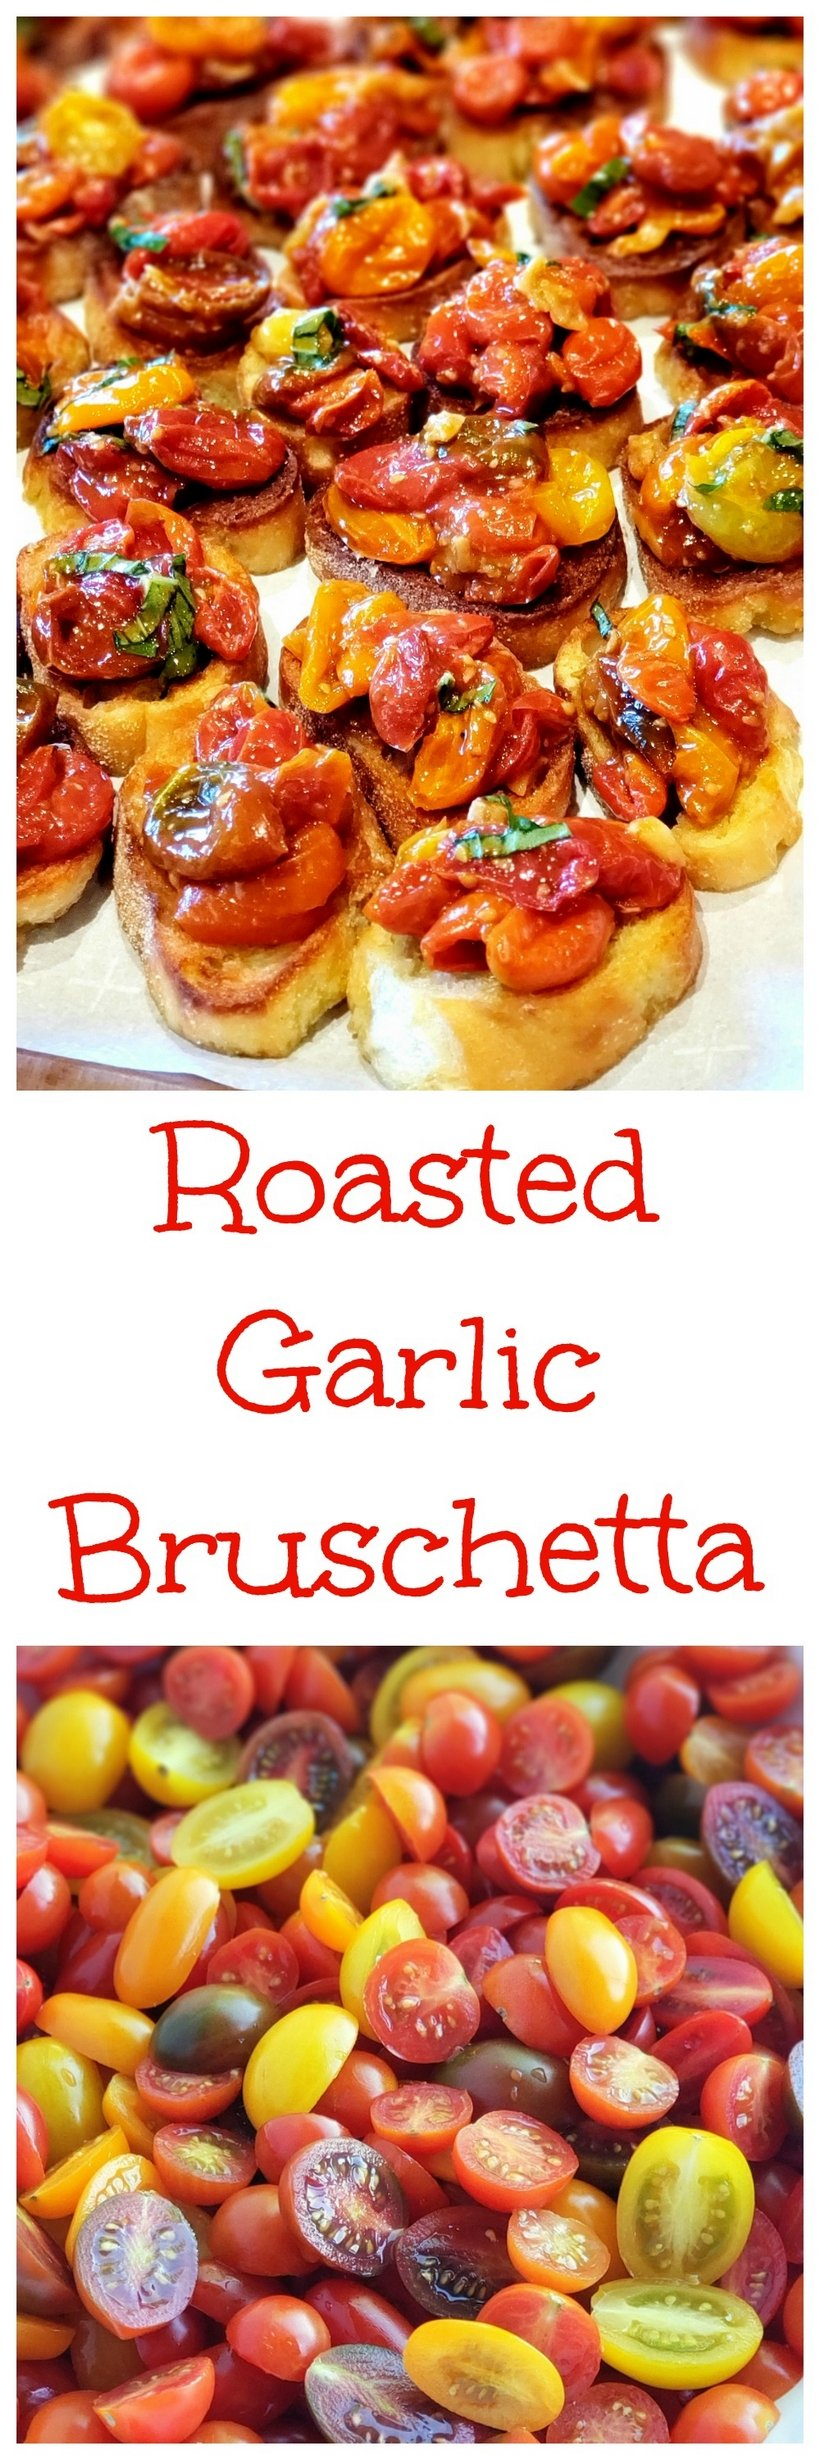 Roasted Garlic Bruschetta, the perfect party appetizer that can be made mostly ahead of time. This elegant dish shines brightly with the simplest of ingredients.  #bruschetta via @cmpollak1